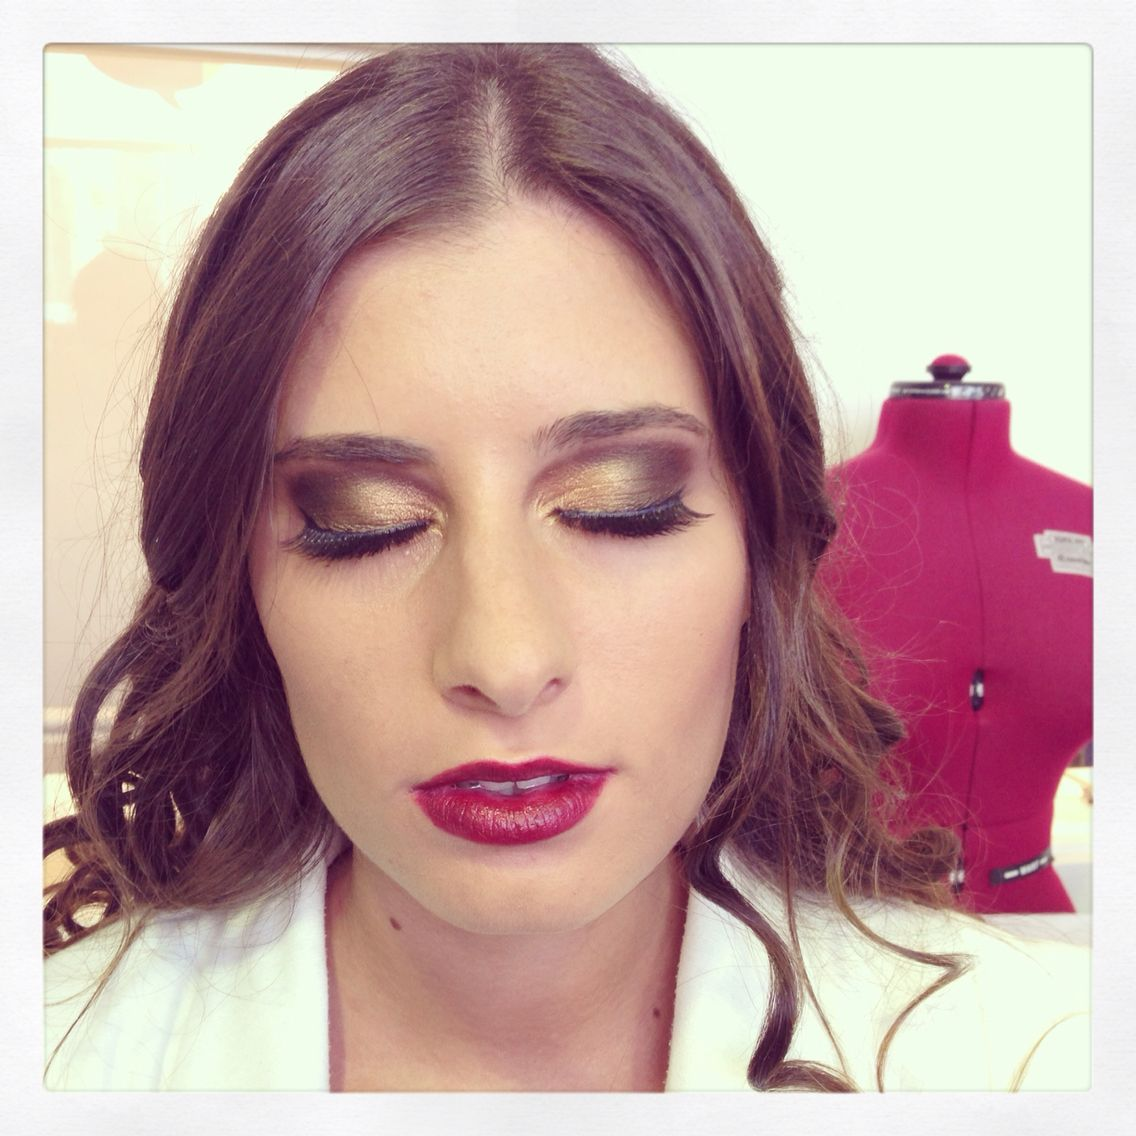 Makeup I did for virgin fashion show! Used Golds and Browns for this look.